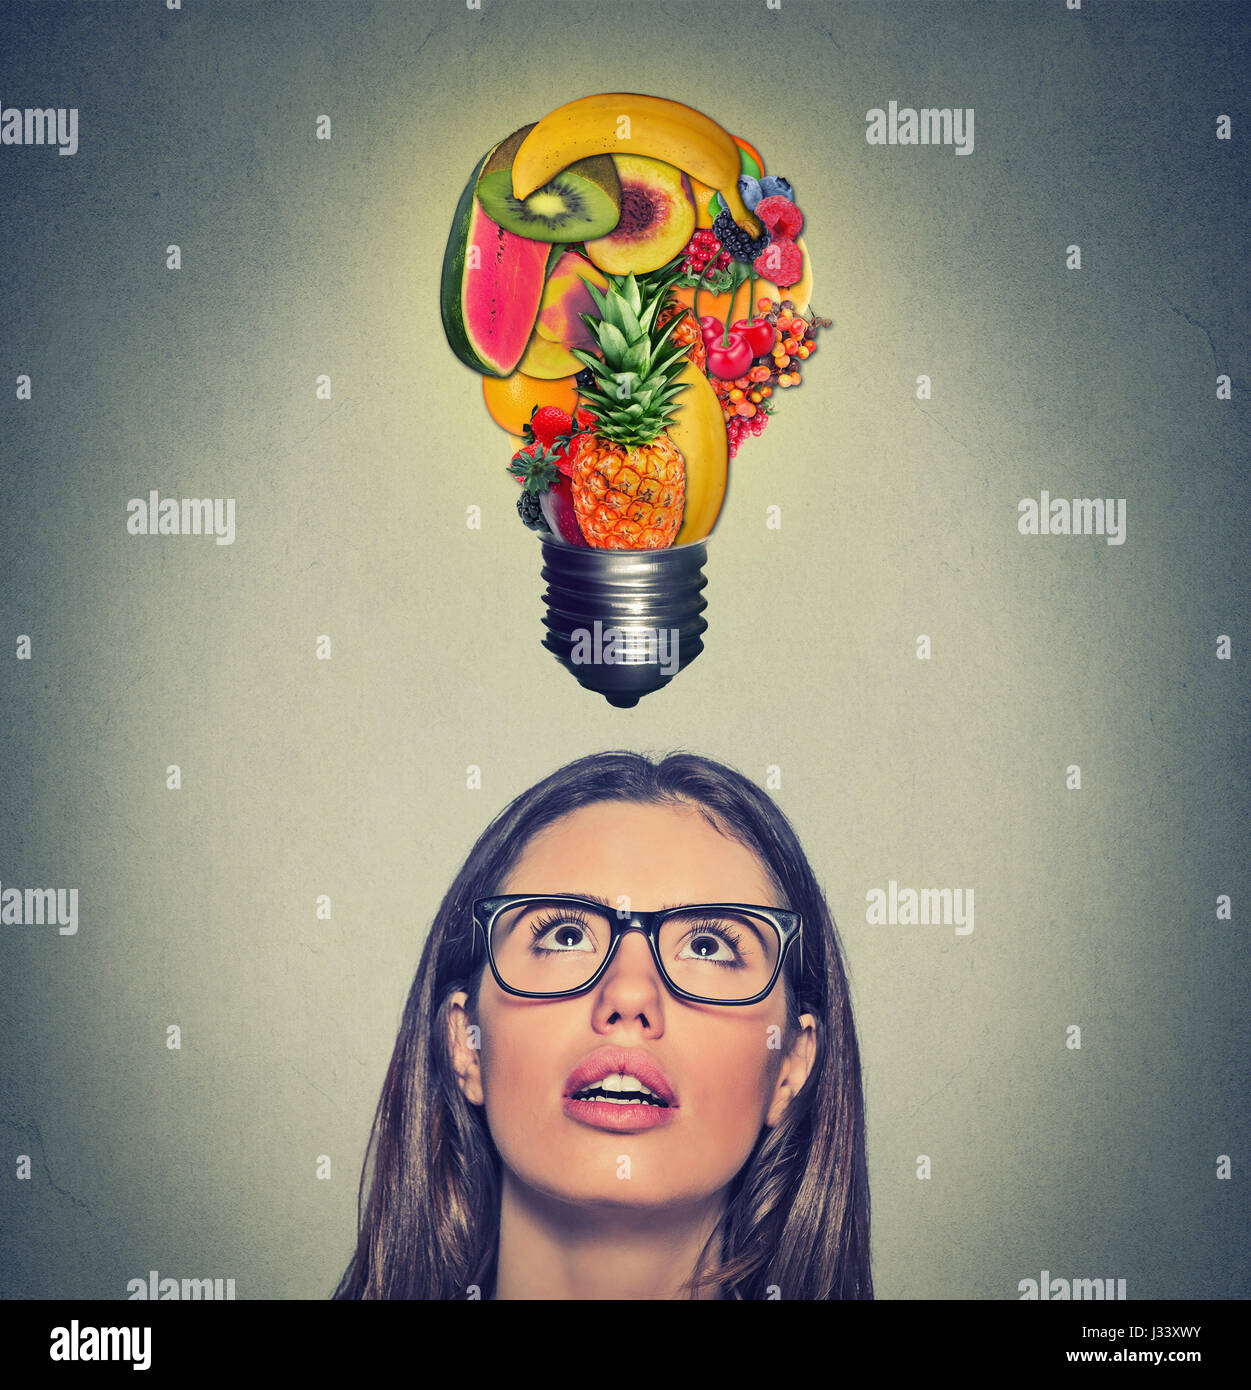 Eating healthy idea and diet tips concept. Closeup portrait headshot woman looking up light bulb made of fruits - Stock Image